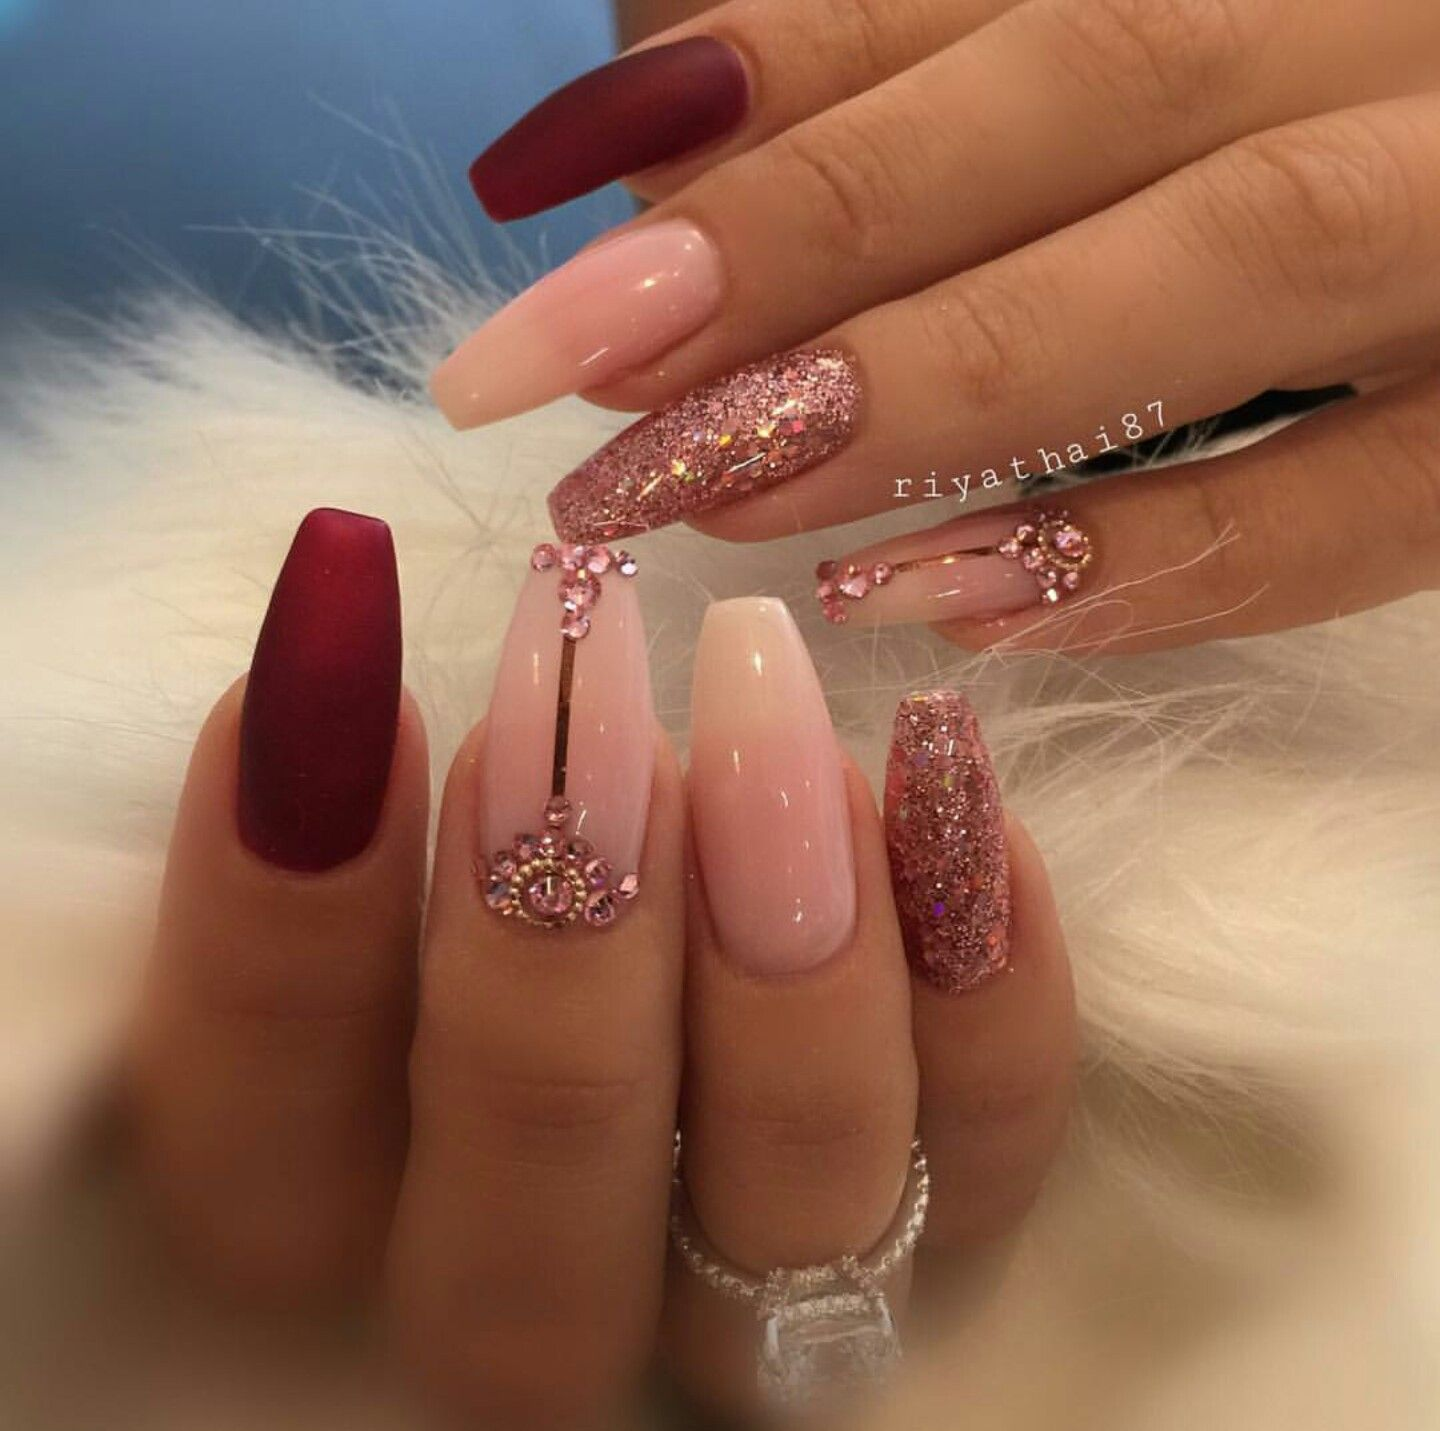 Gorge ♡ | Fake Nails ♡ (Acrylic/Gel) | Pinterest | Coffin nails ...